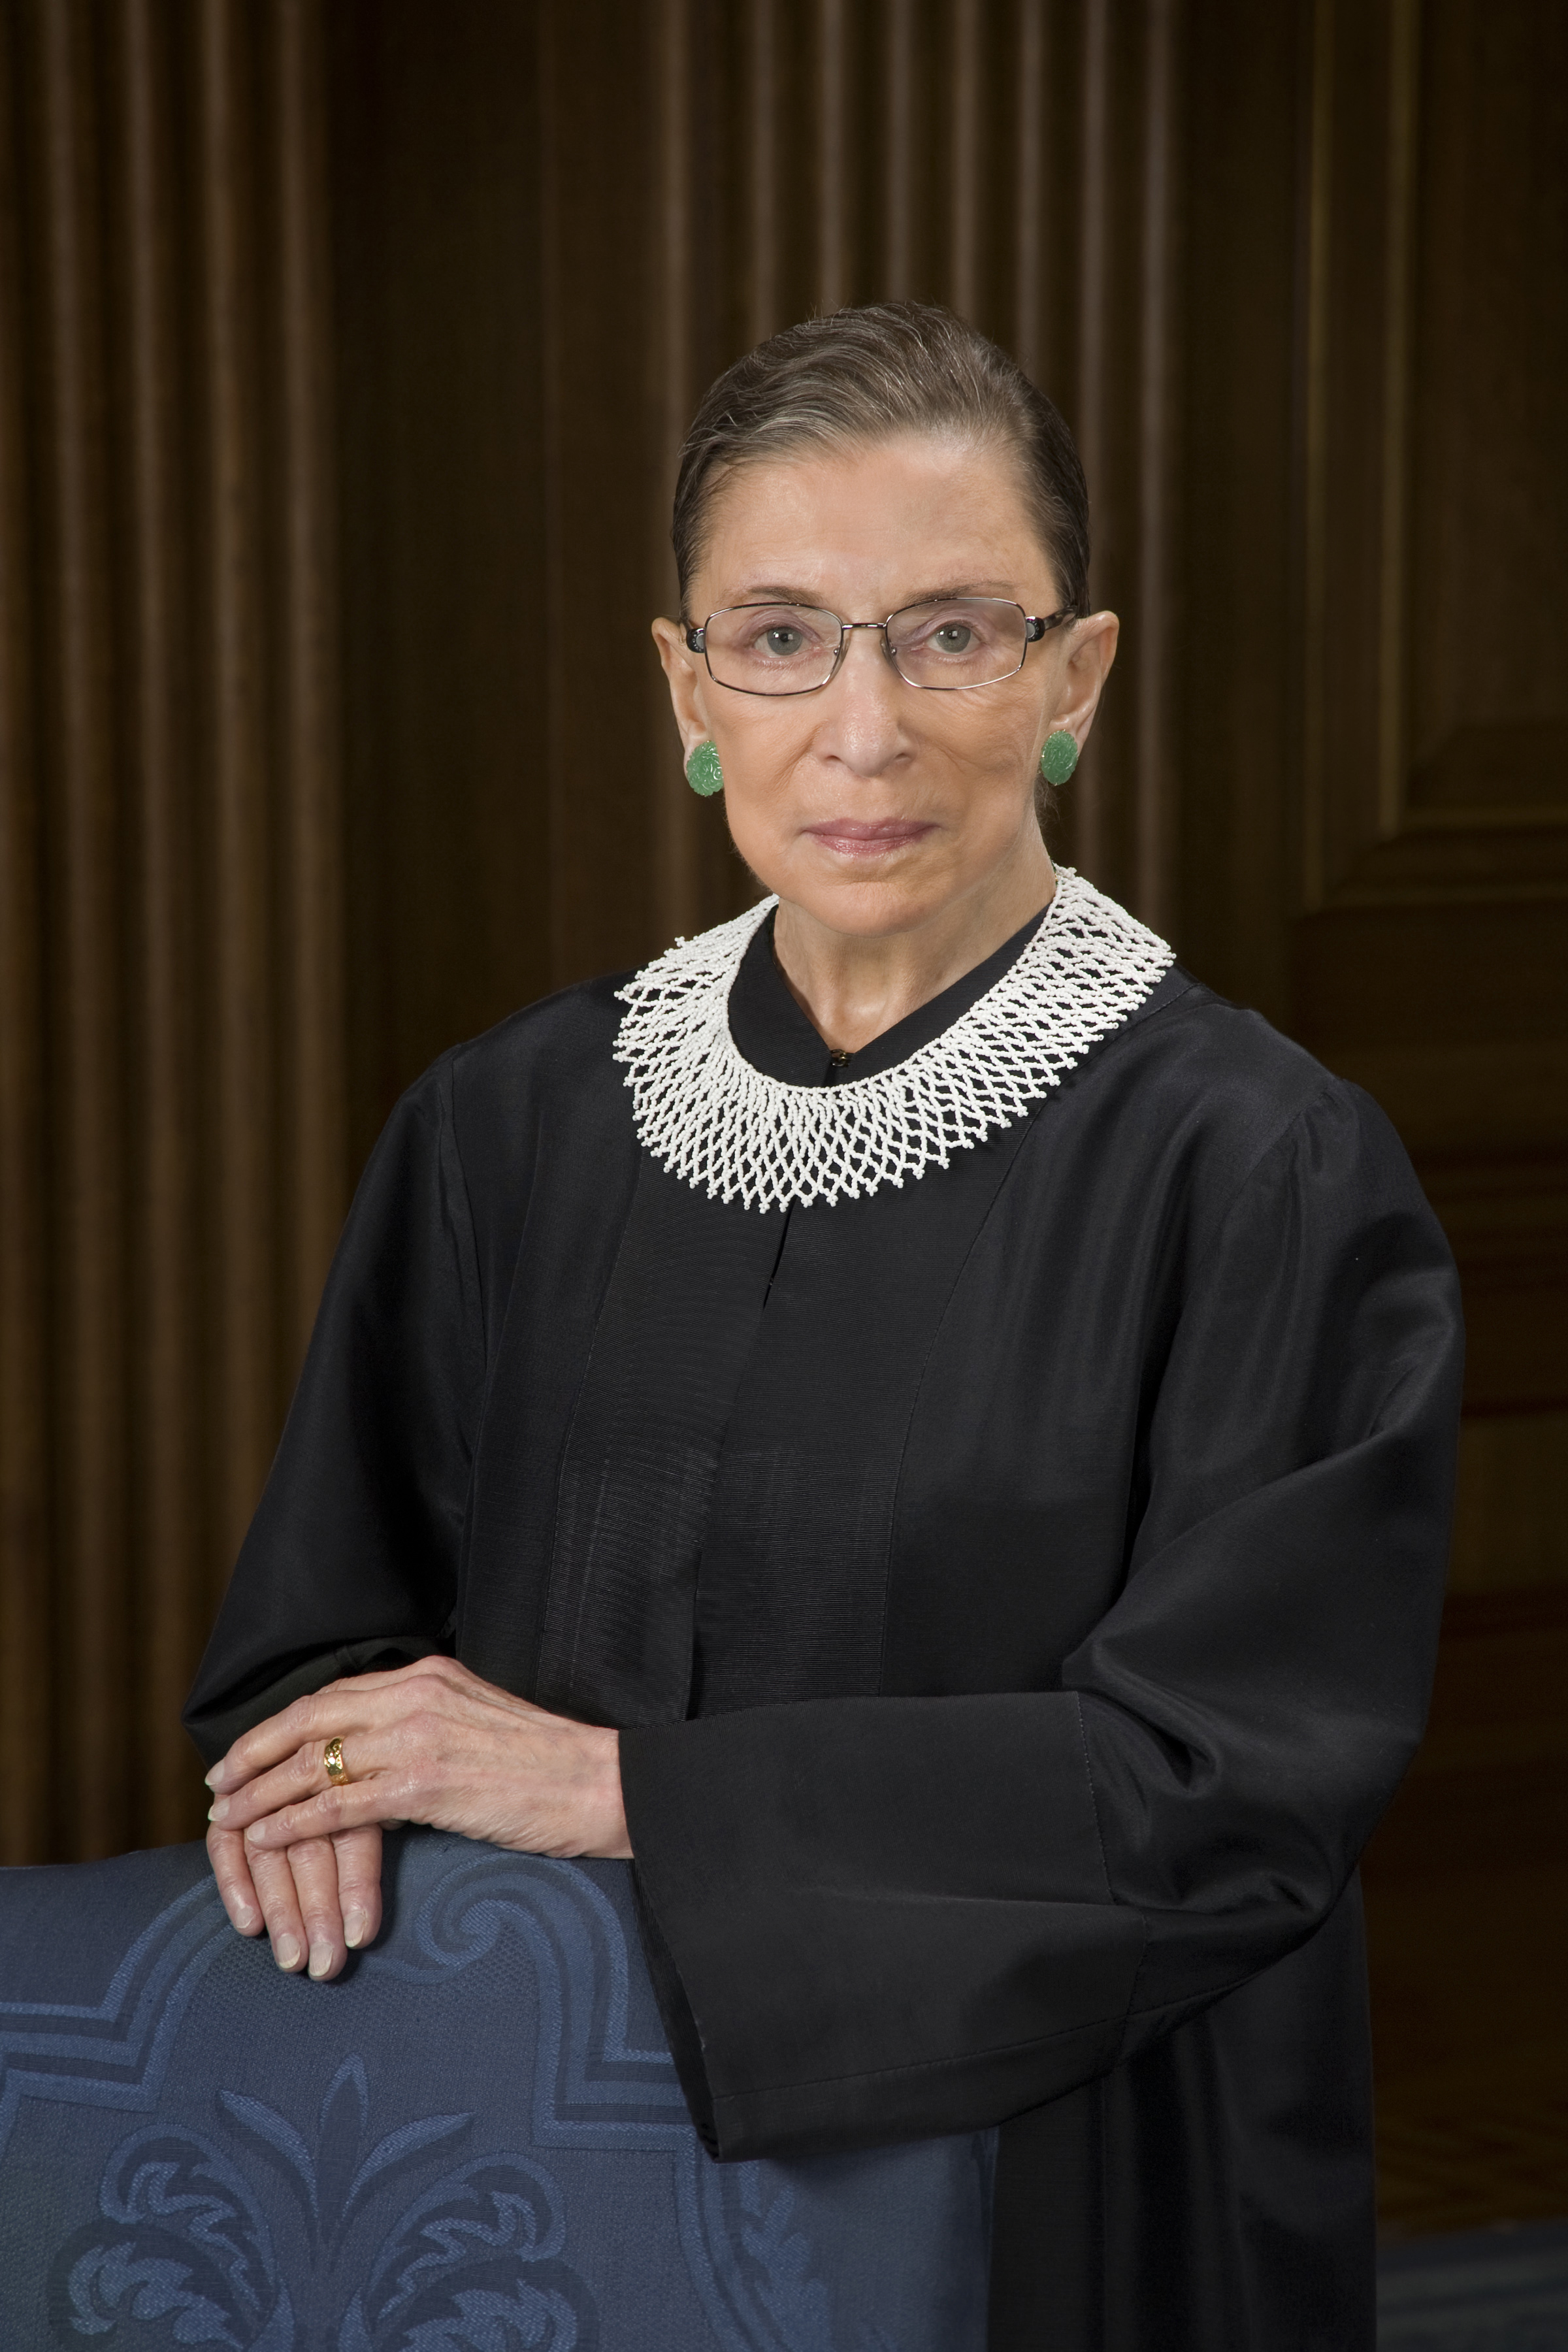 When I'm sometimes asked when will there be enough [women on the Supreme Court] and I say, 'When there are nine,' people are shocked. But there'd been nine men, and nobody's ever raised a question about that. - — Ruth Bader Ginsburg